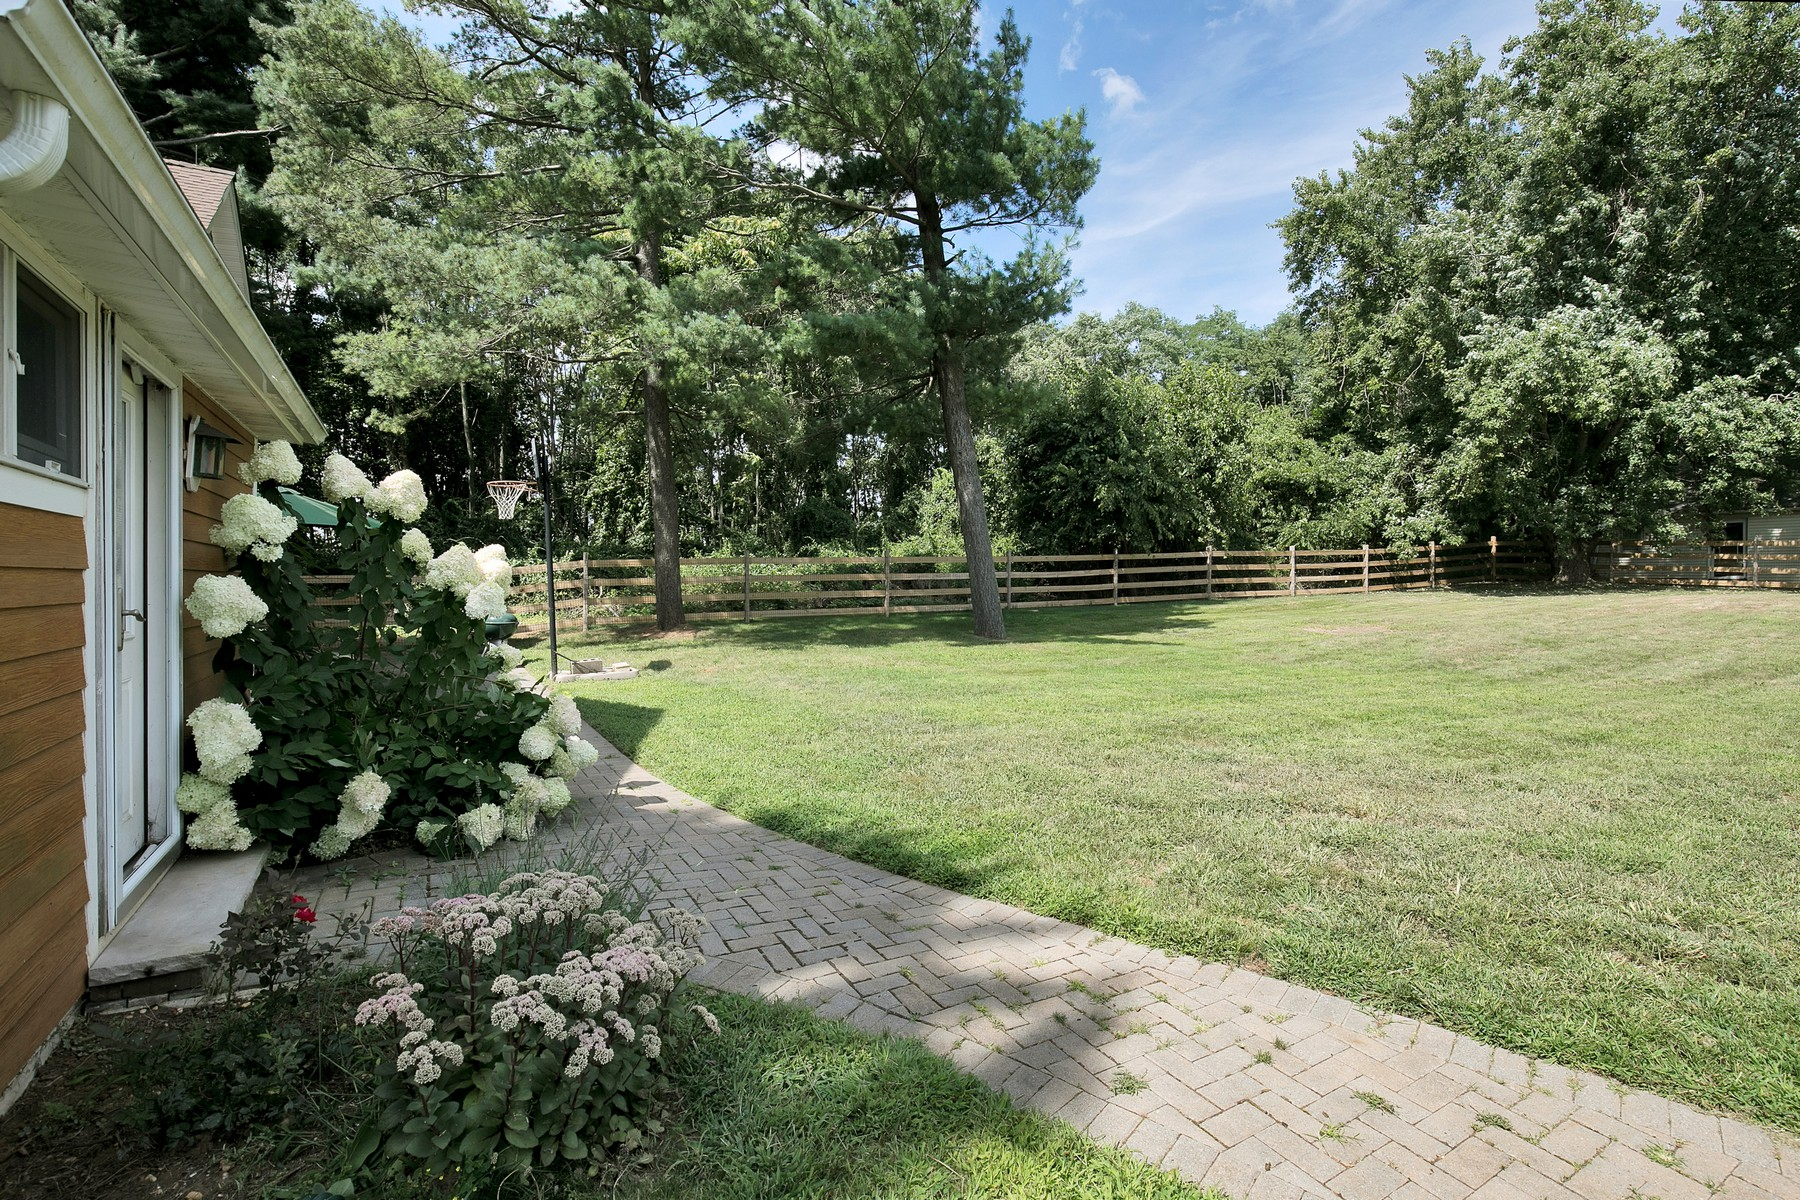 Additional photo for property listing at 40 Acre Working Farm 151 Dutch Lane Road Colts Neck, New Jersey 07722 United States